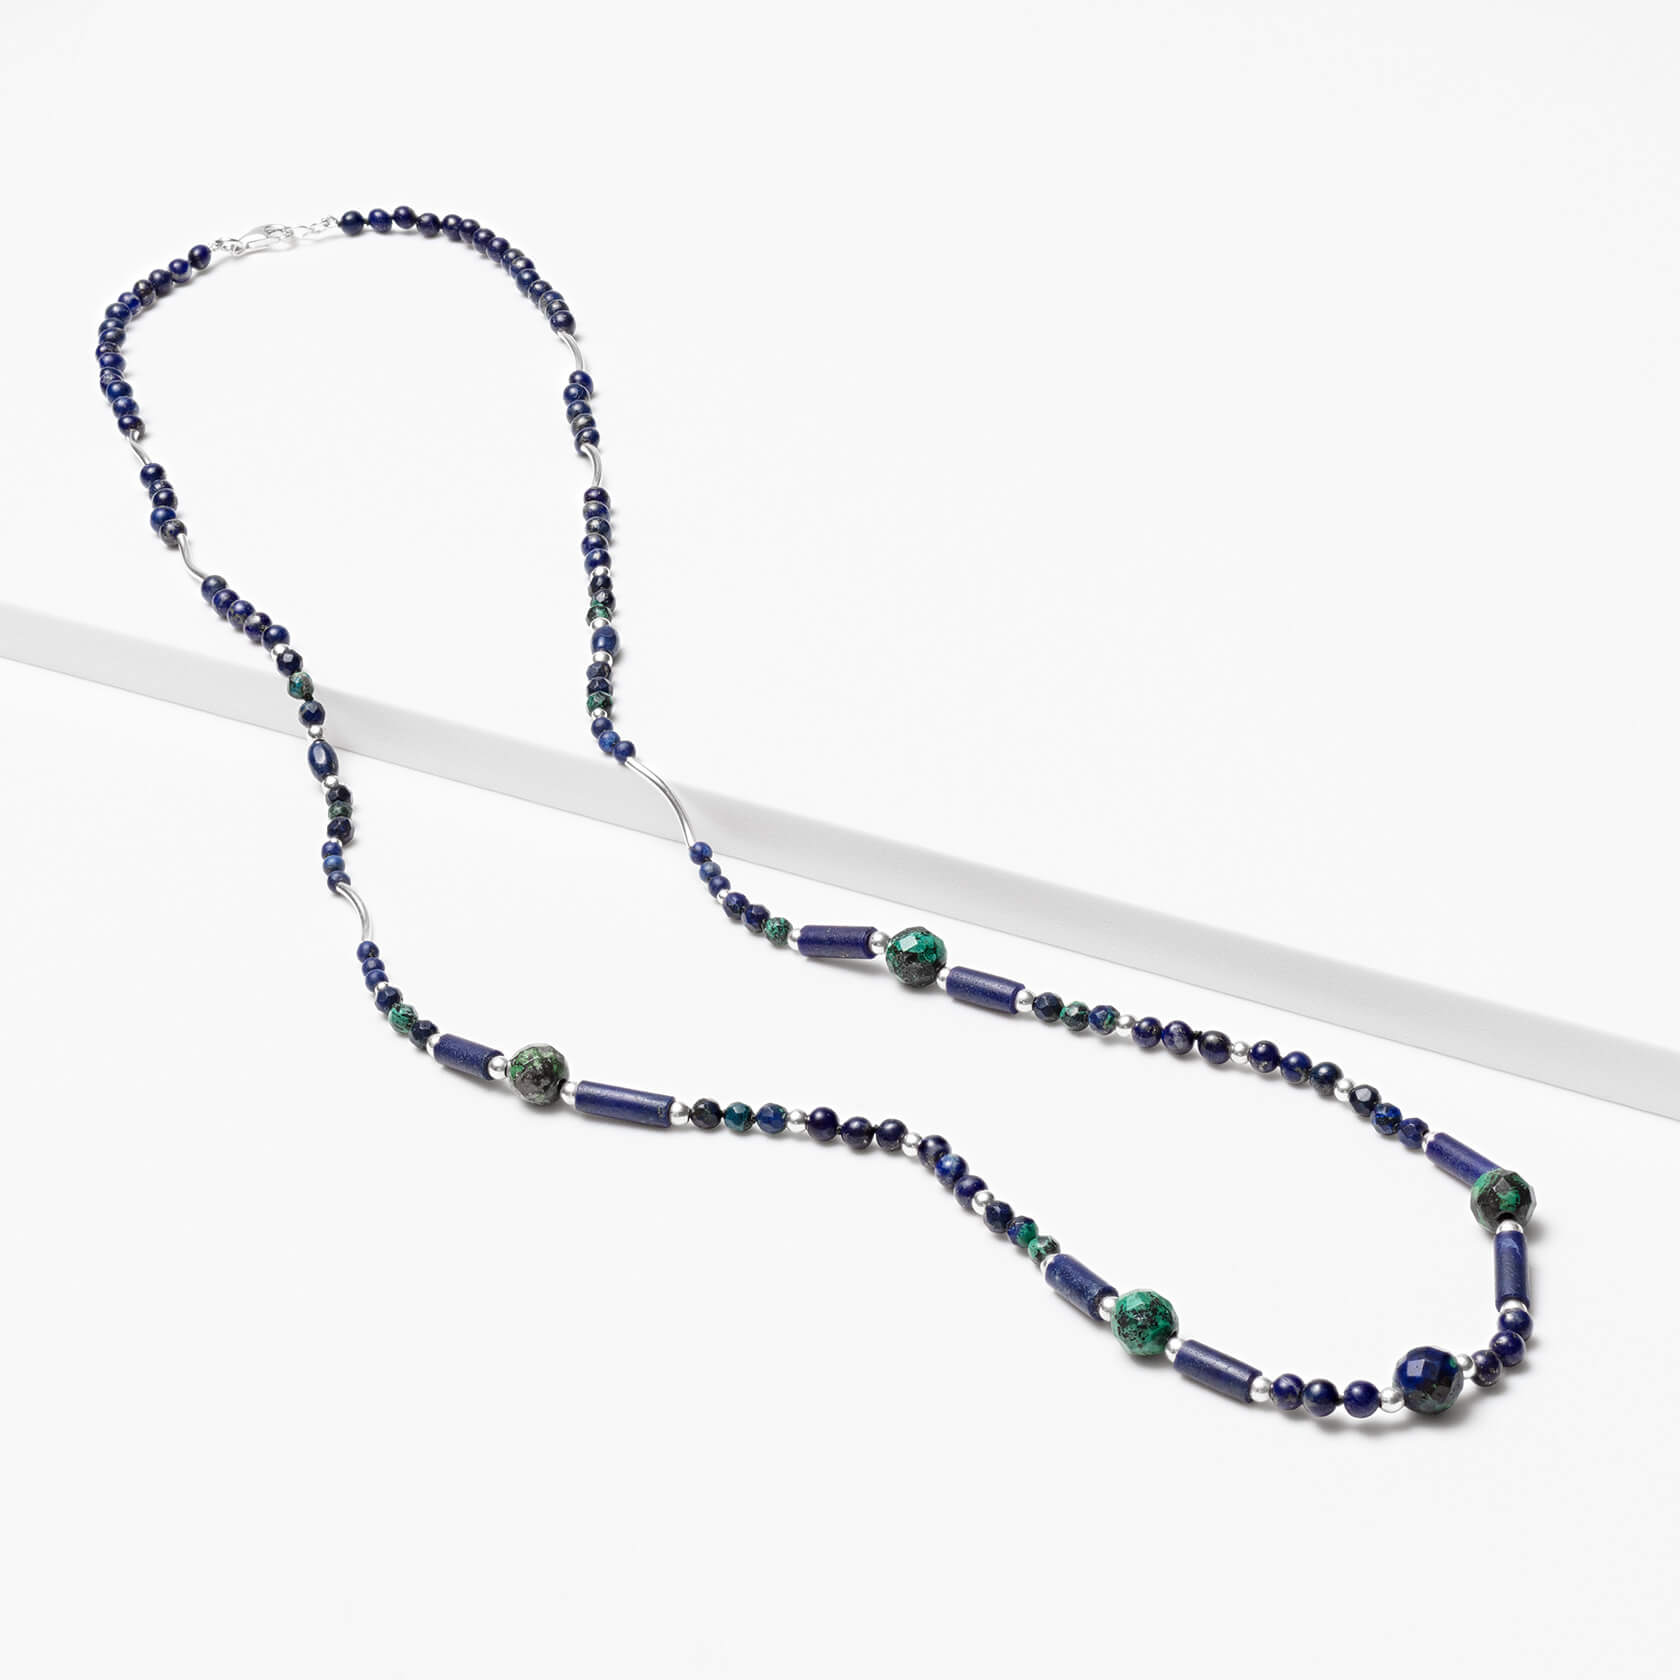 Lapis and azurite necklace